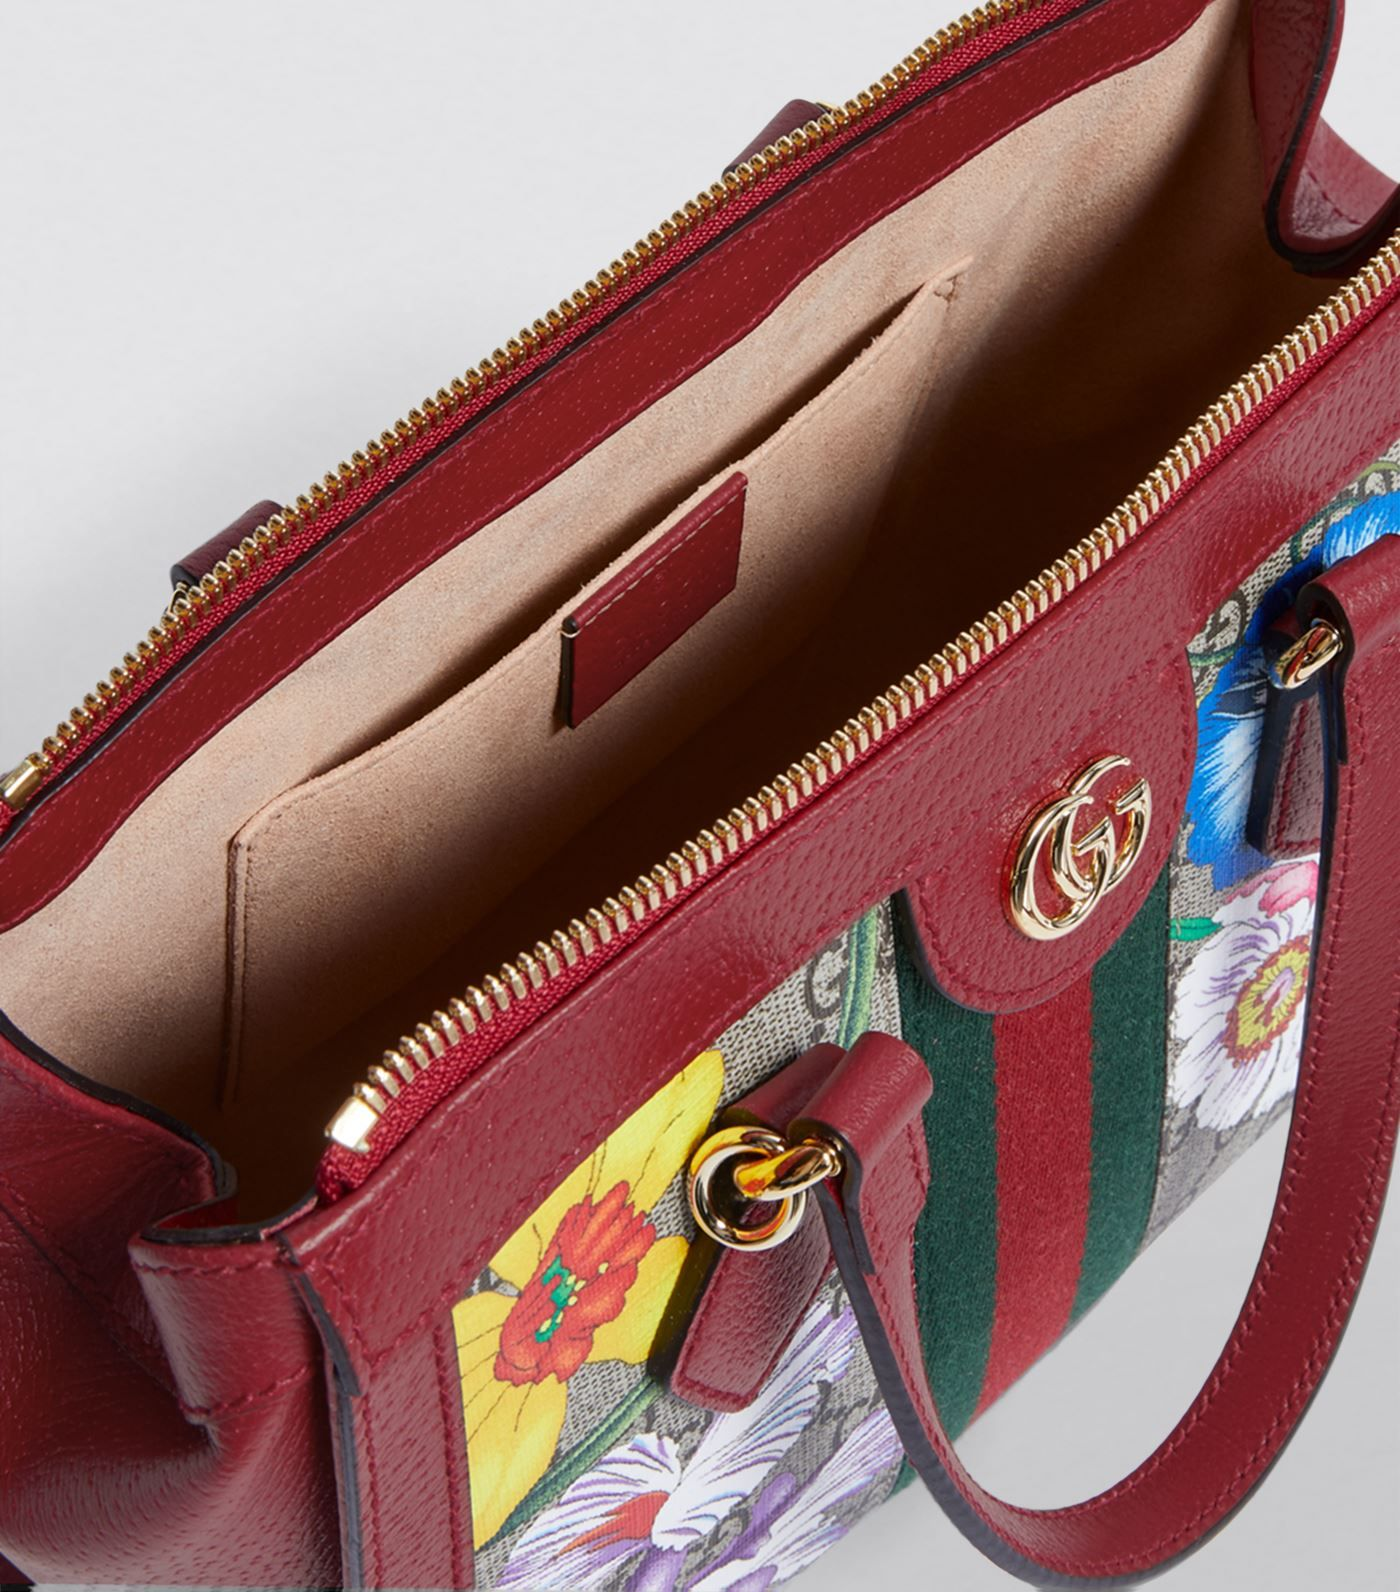 Gucci red Ophidia Flora TopHandle Bag Harrods UK in